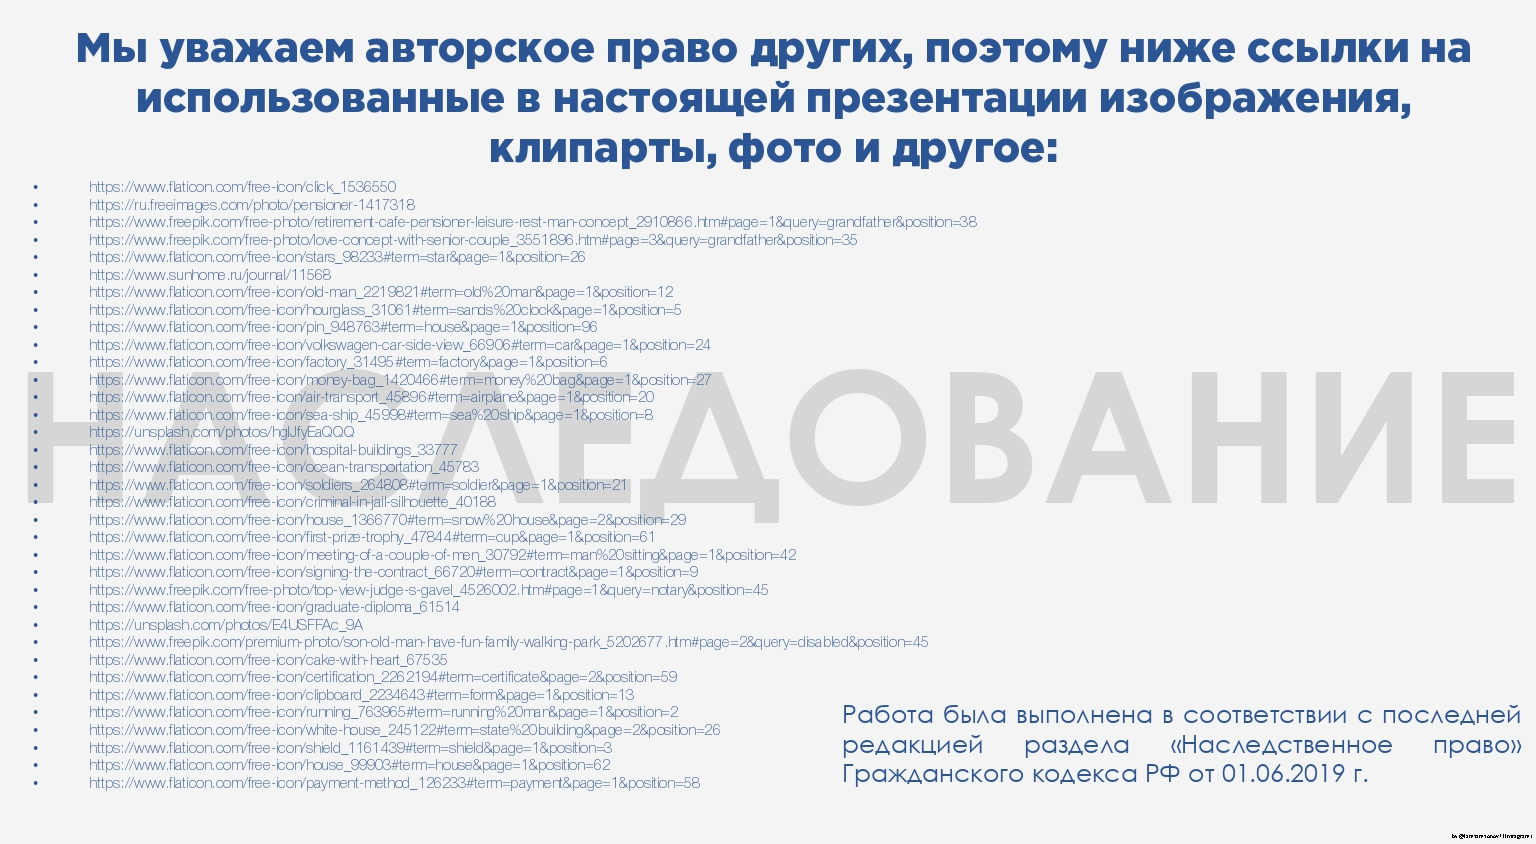 18_page-0019.jpg